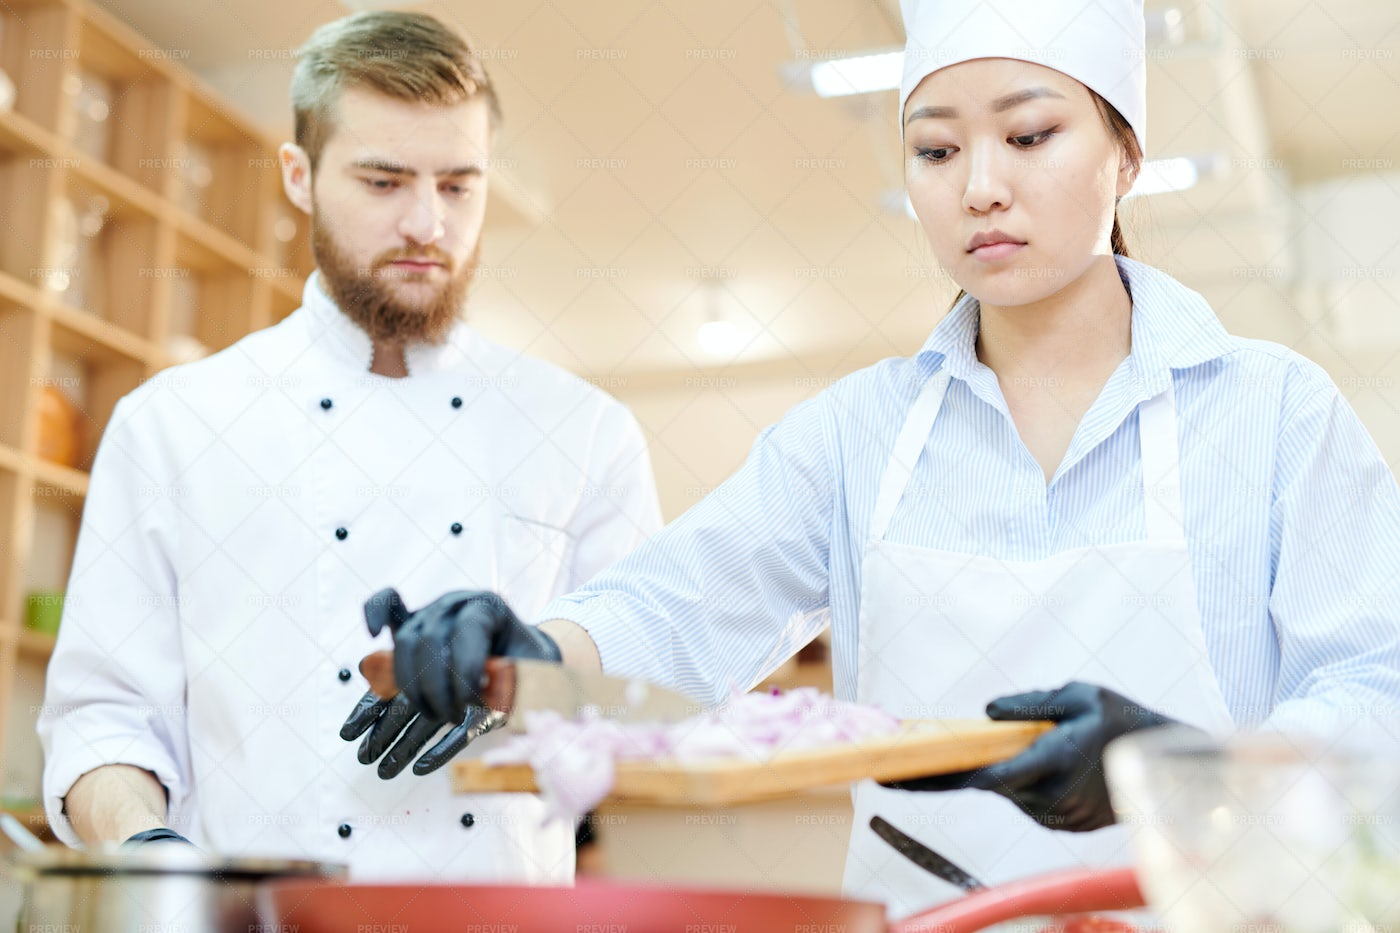 Two Chefs Working In Cafe Kitchen: Stock Photos